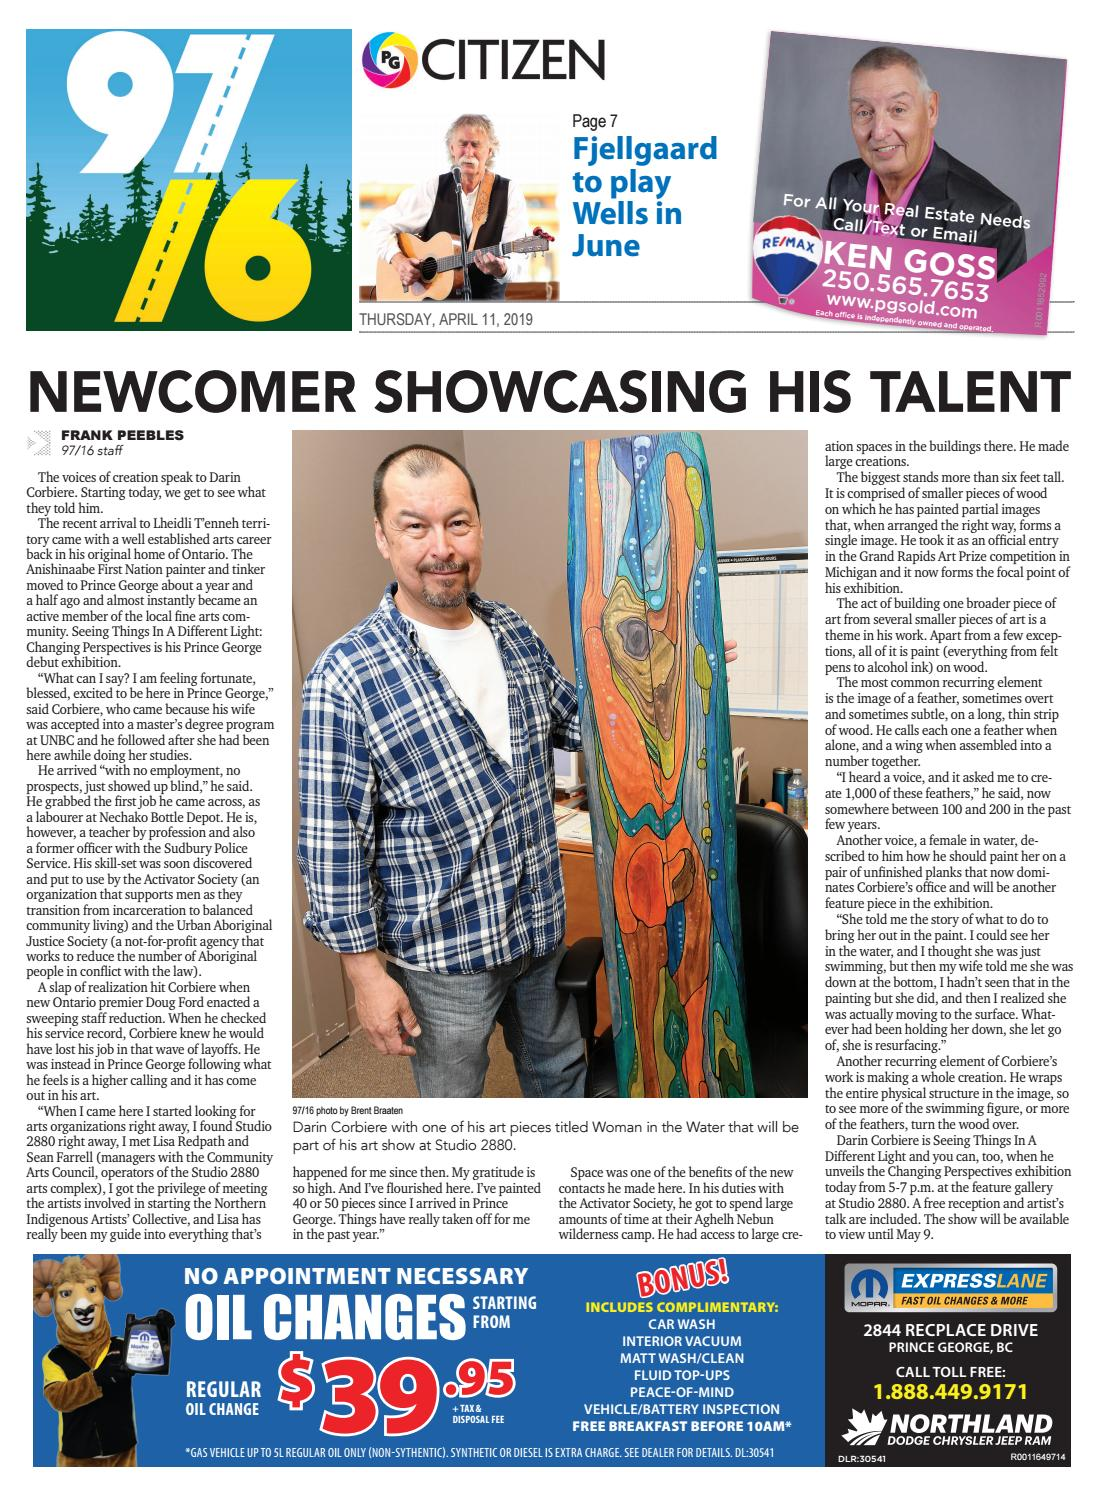 97/16 - Prince George's Weekly News by Prince George Citizen